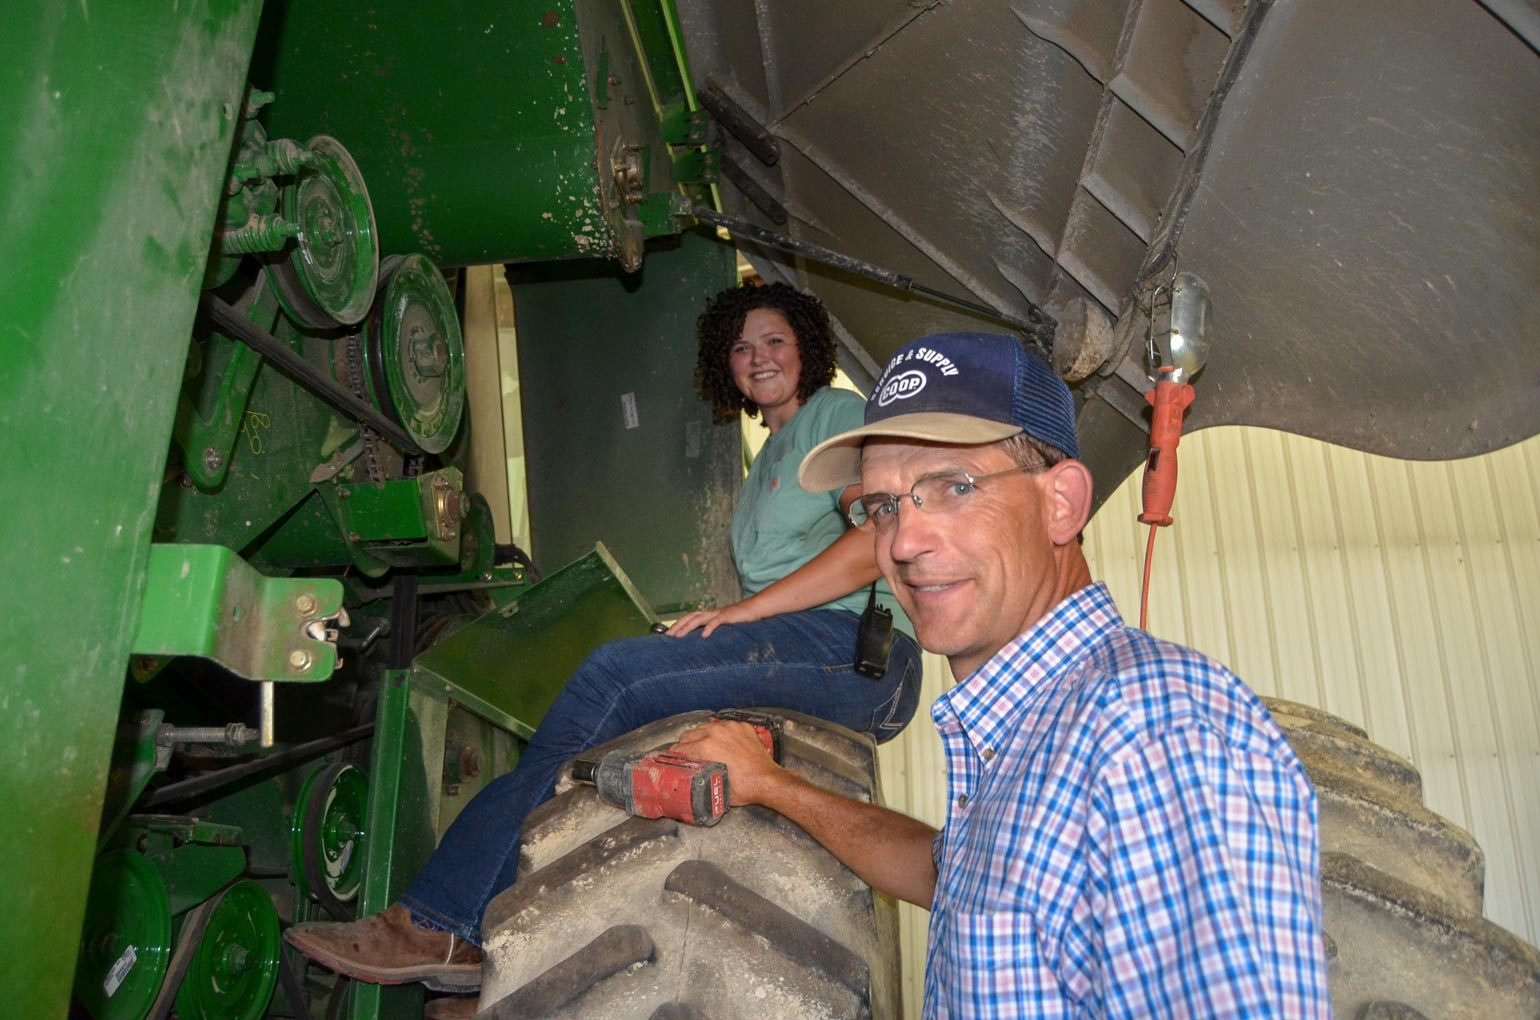 A young lady sitting on a tractor tire while she and her father work in the shop